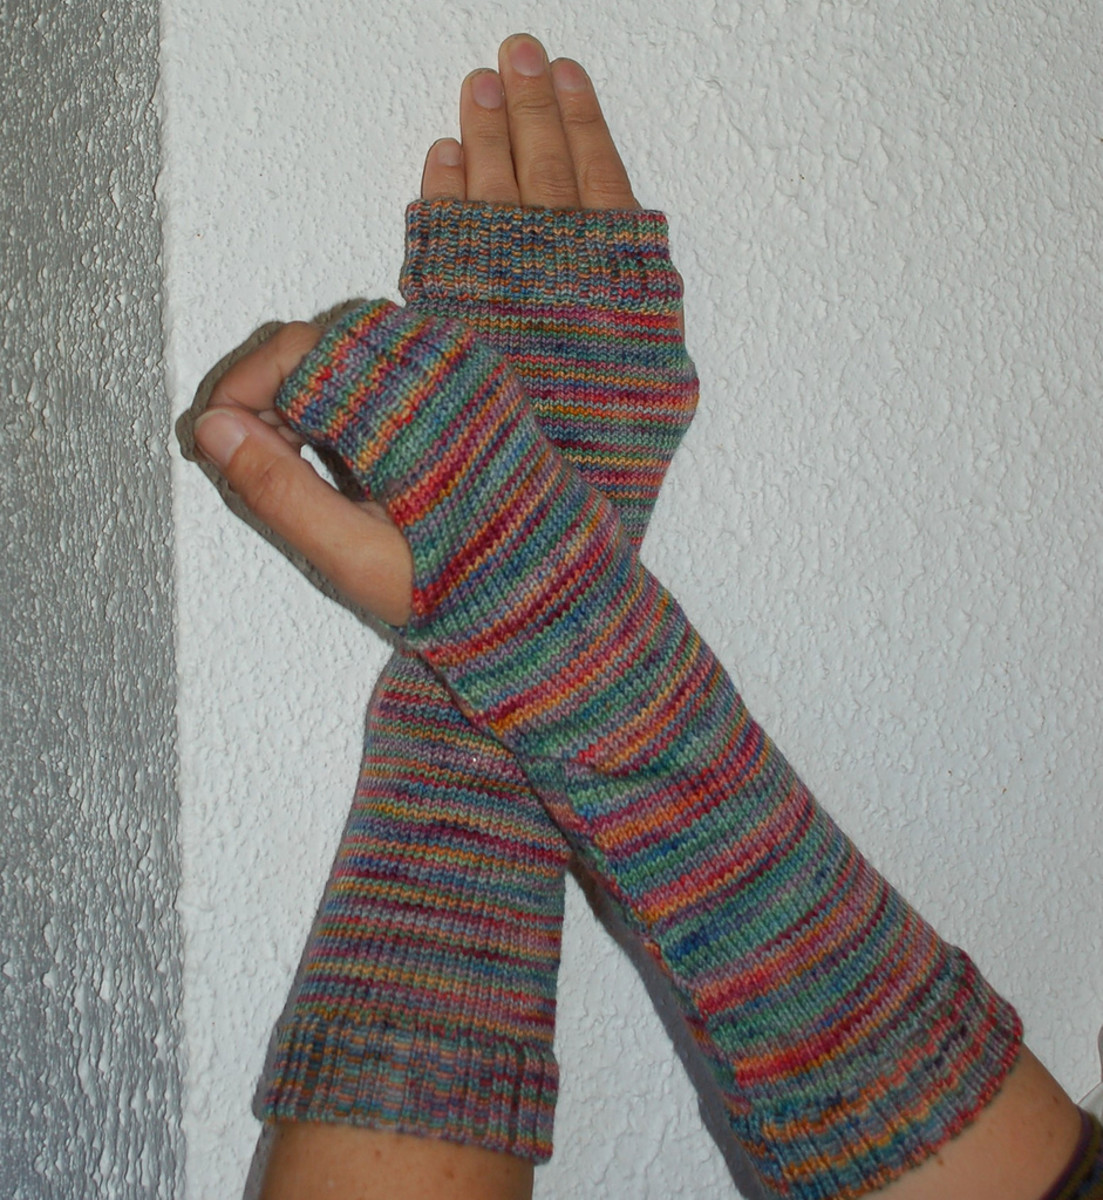 How To Knit Easy Armwarmers Feltmagnet